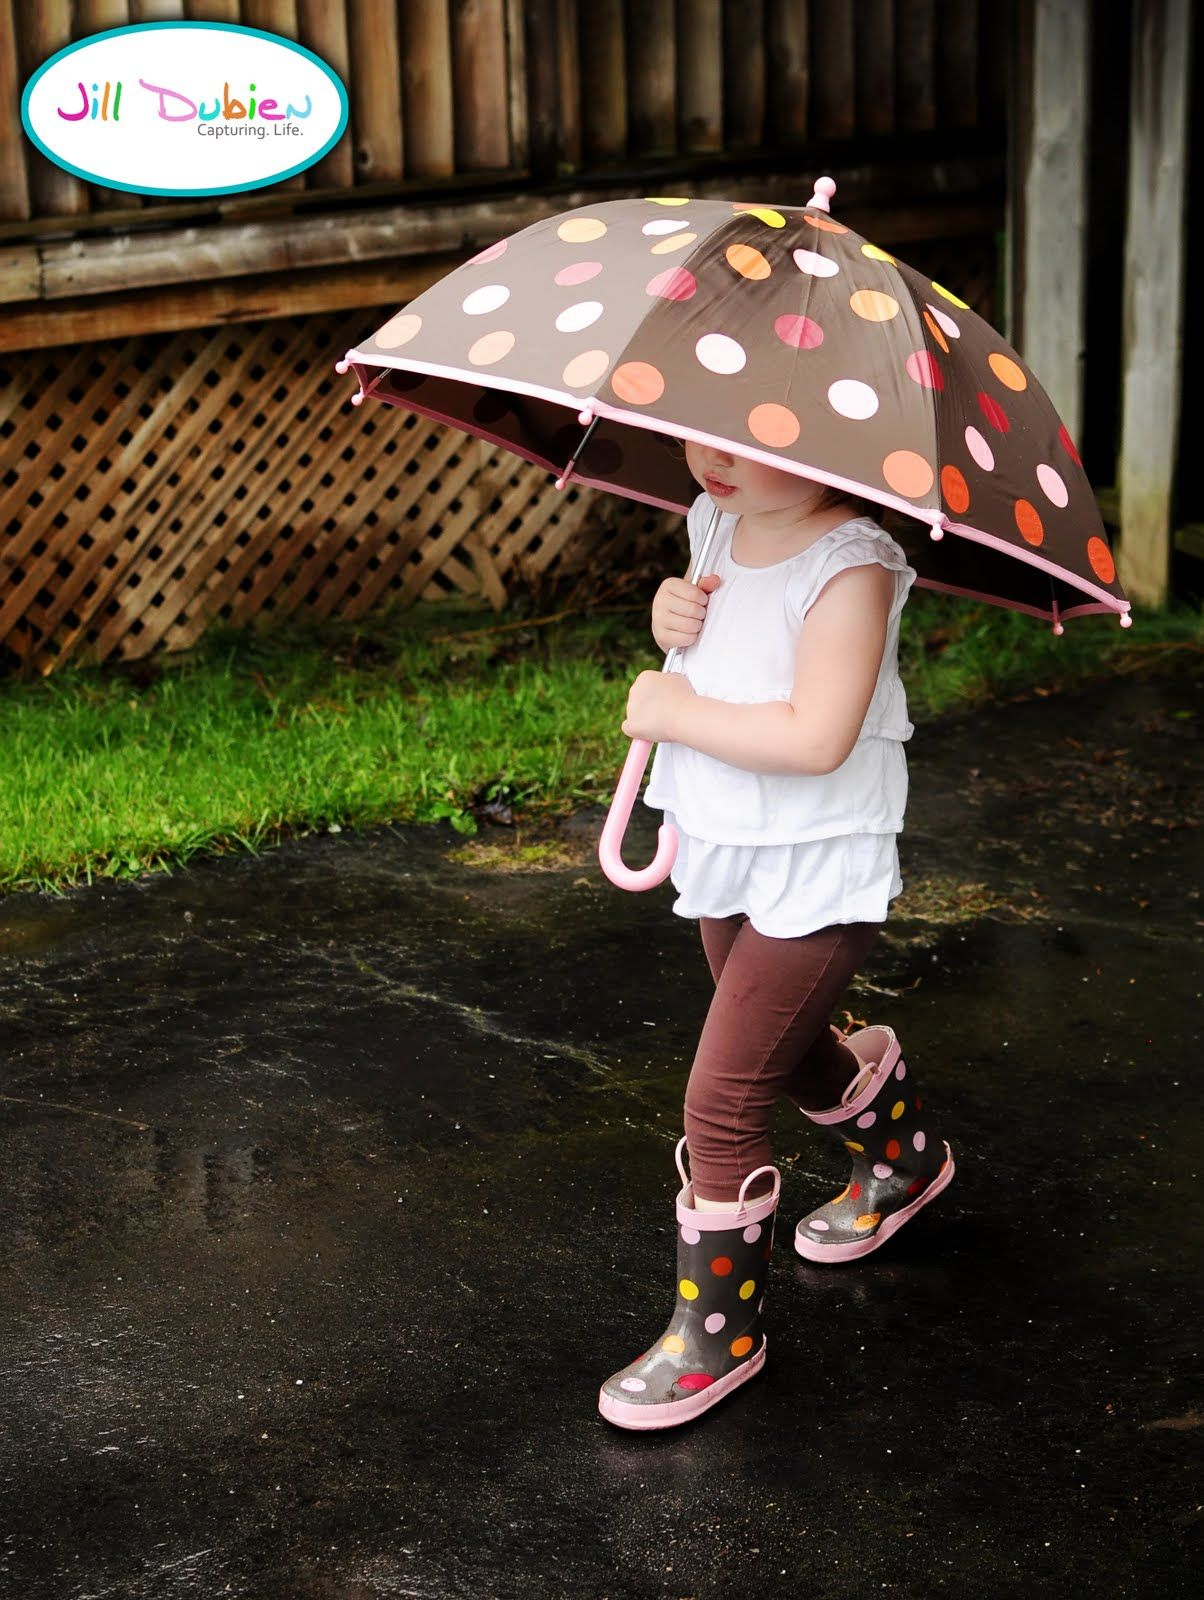 Every little girl should have an umbrella and matching pair of rain boots! (you should see the food crafts this creative mom makes on her Meet the Dubiens blog!)